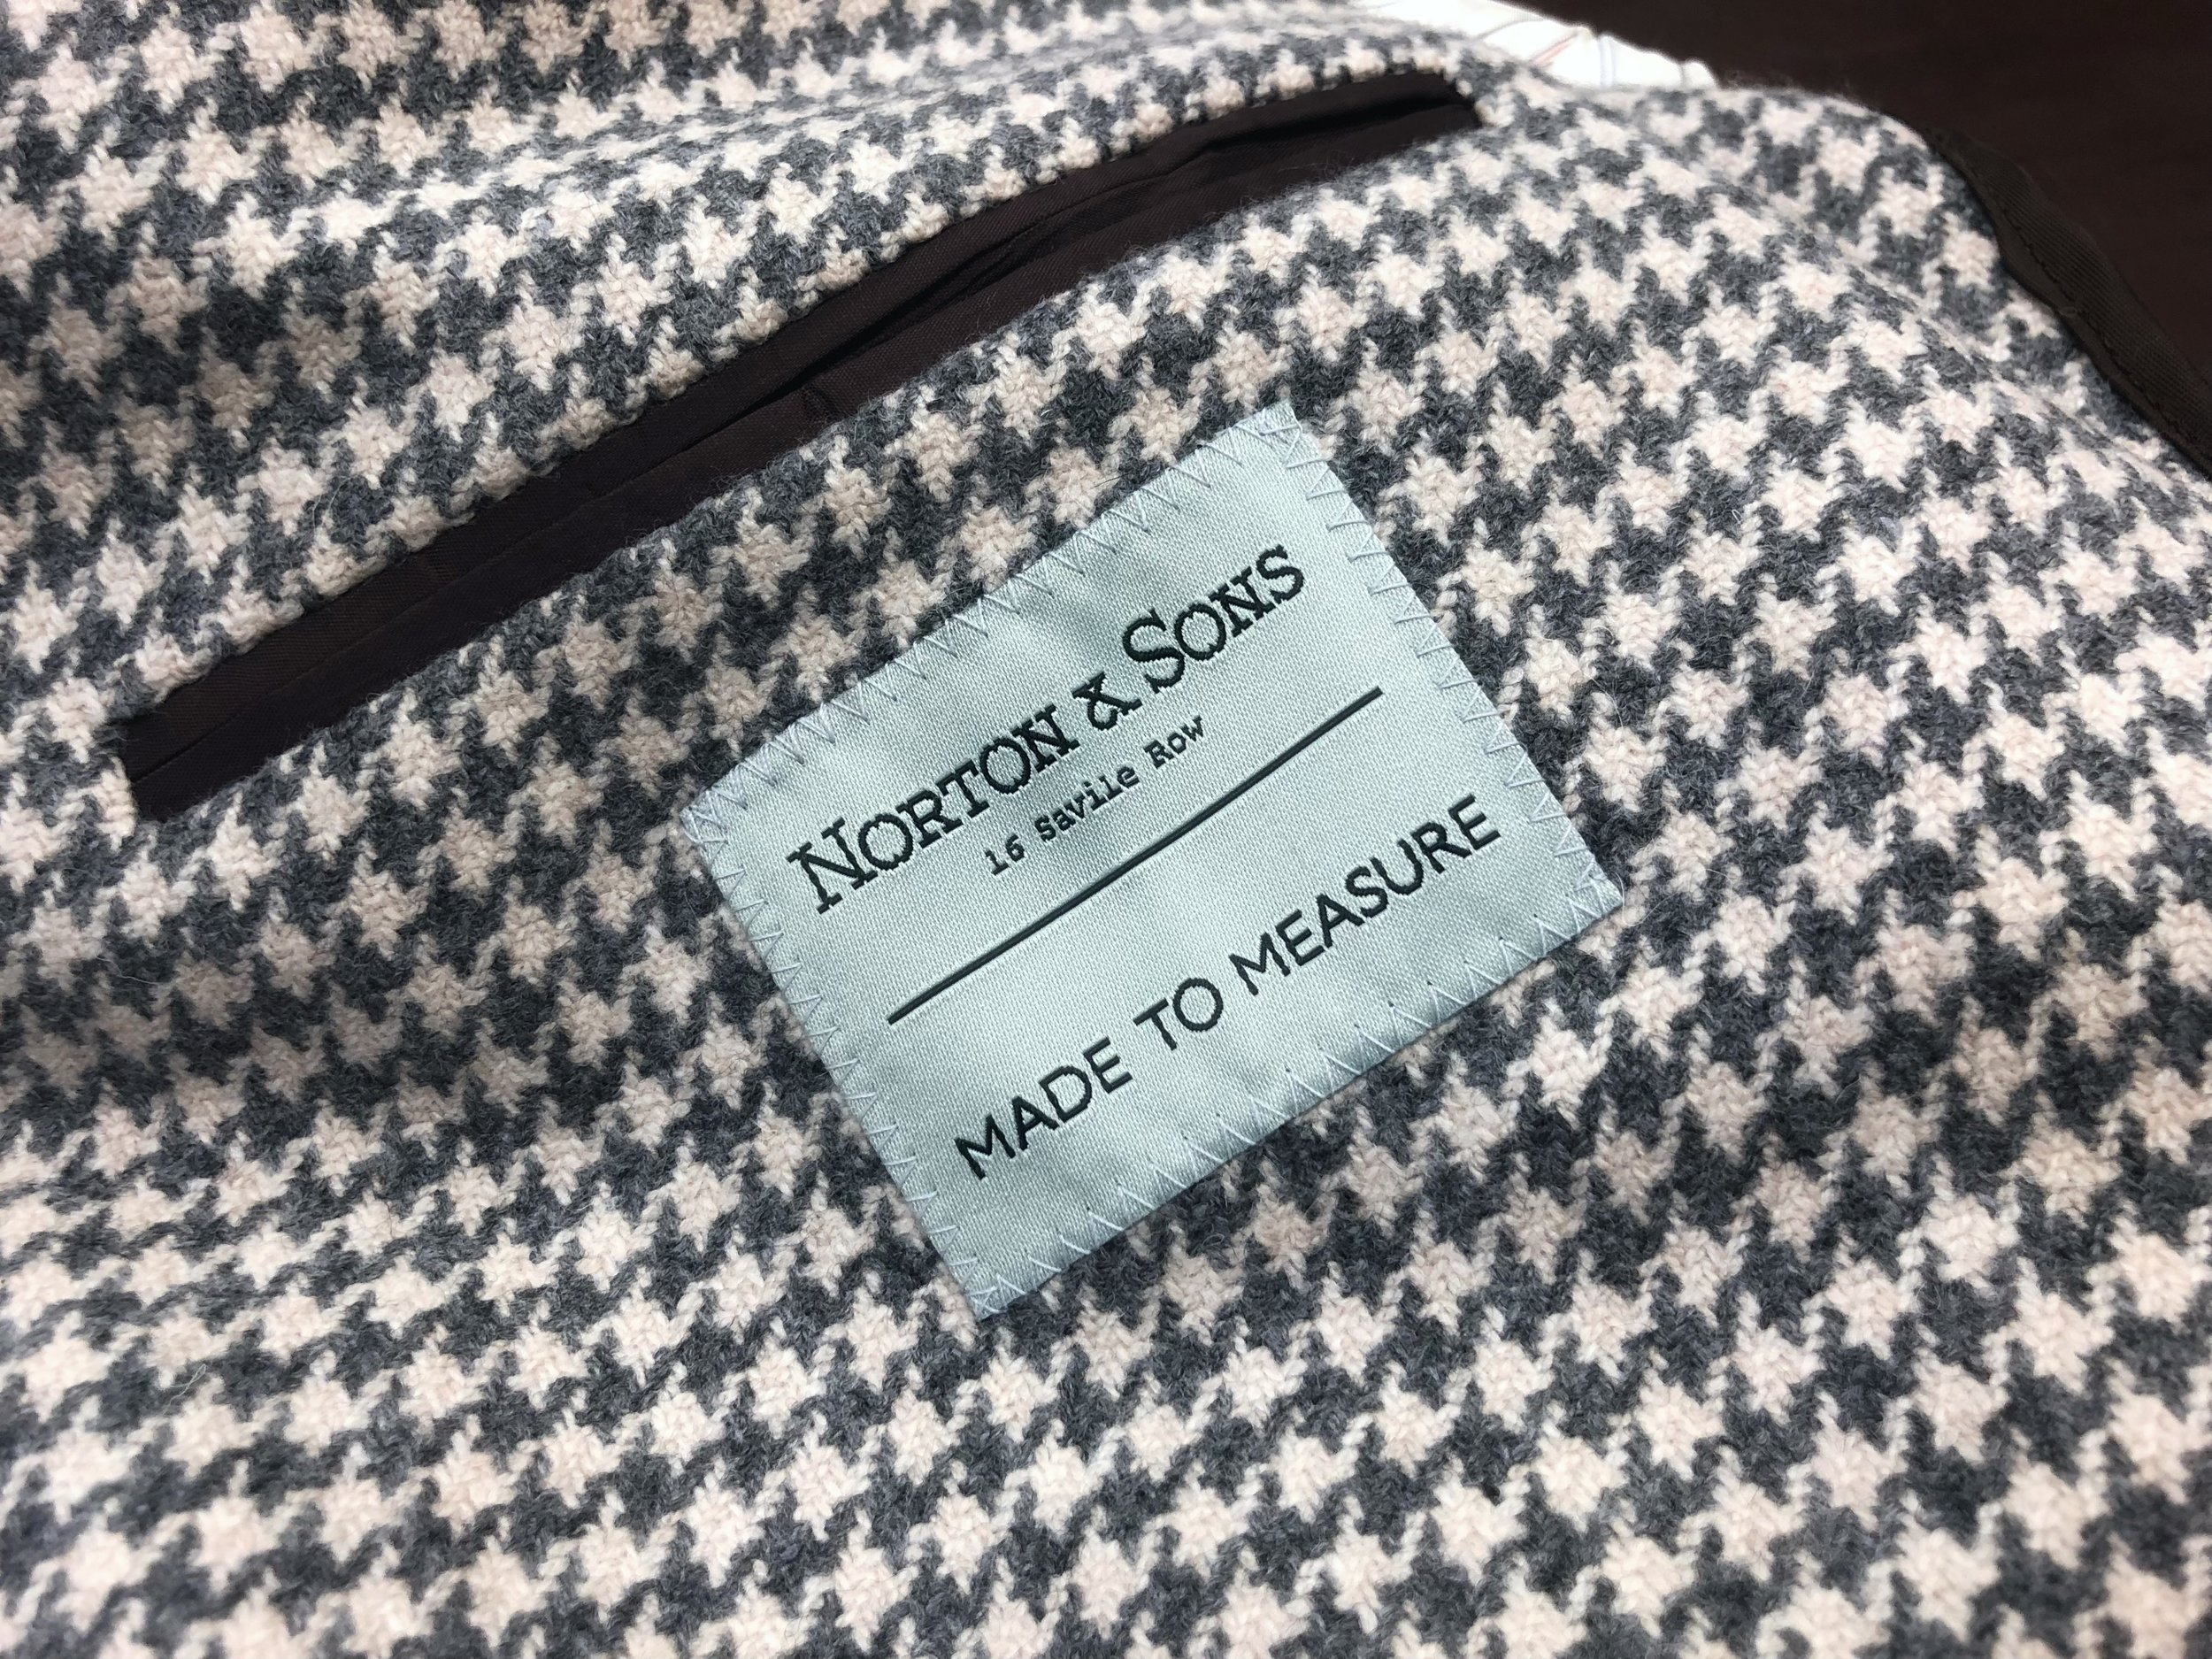 Sneak peek of the new Norton & Sons   Made to Measure label inside it's first home.